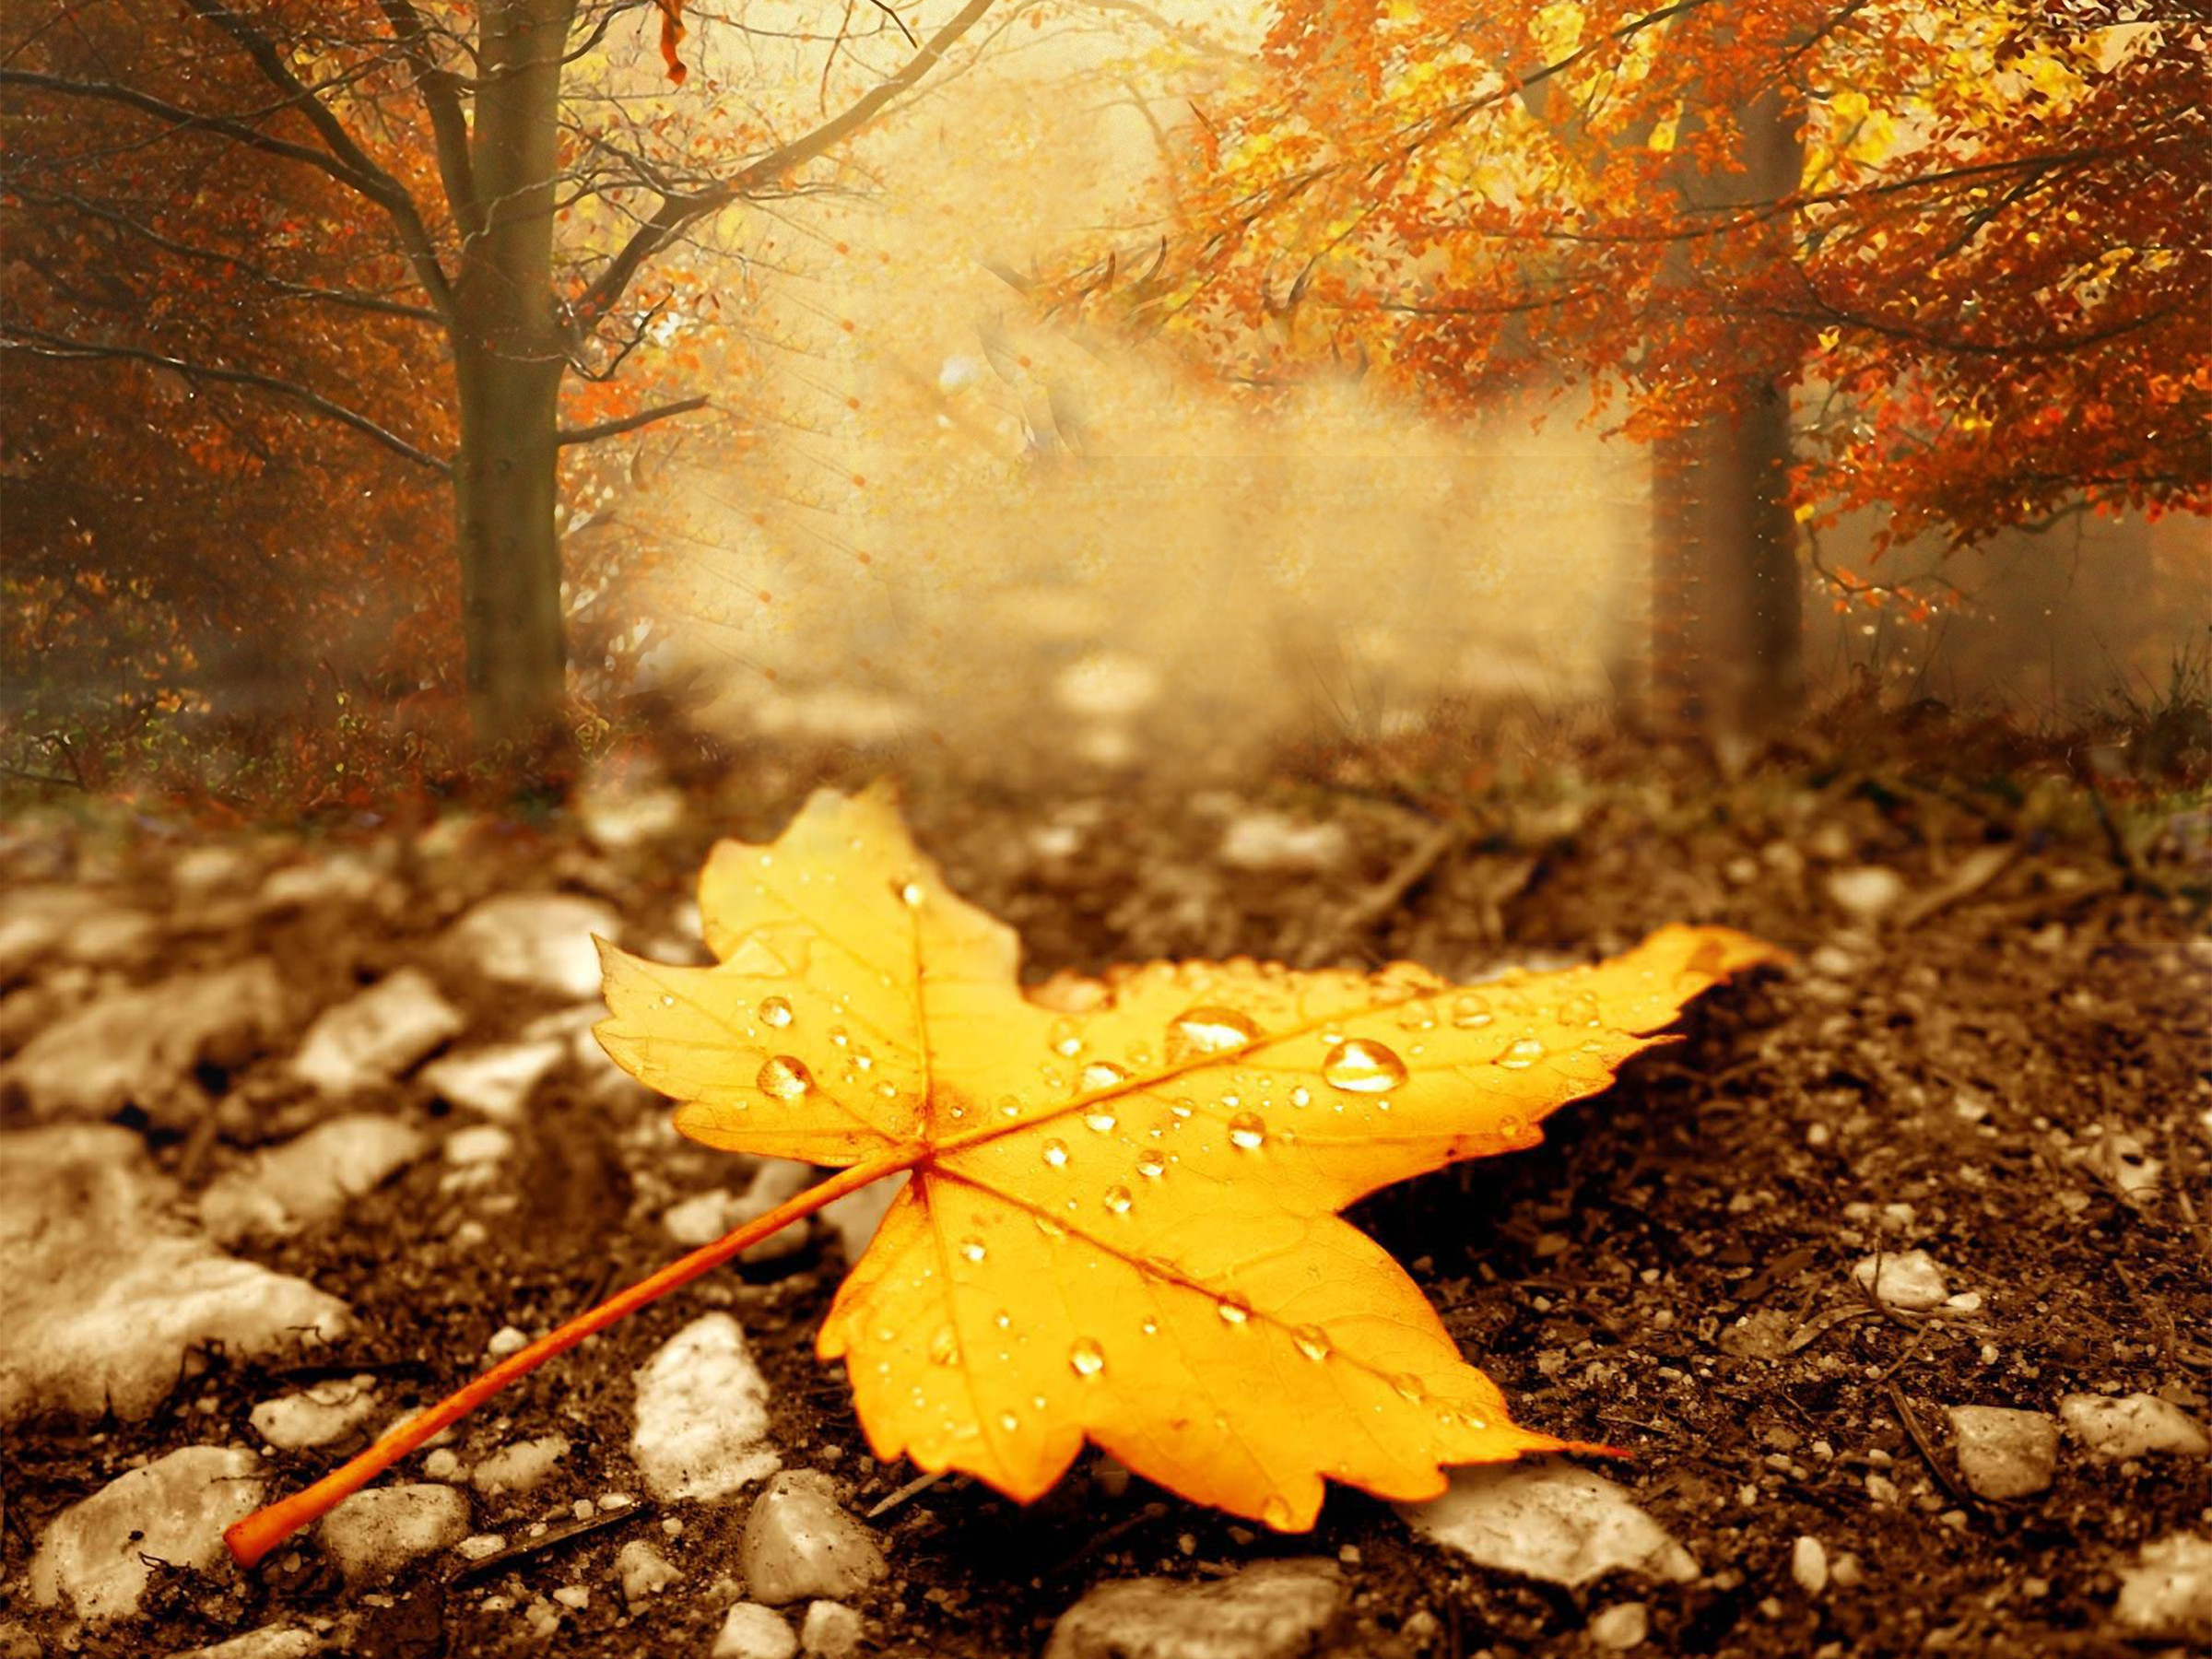 Fall Season Wallpapers High Definition with Wallpaper High Resolution  px 5.95 MB